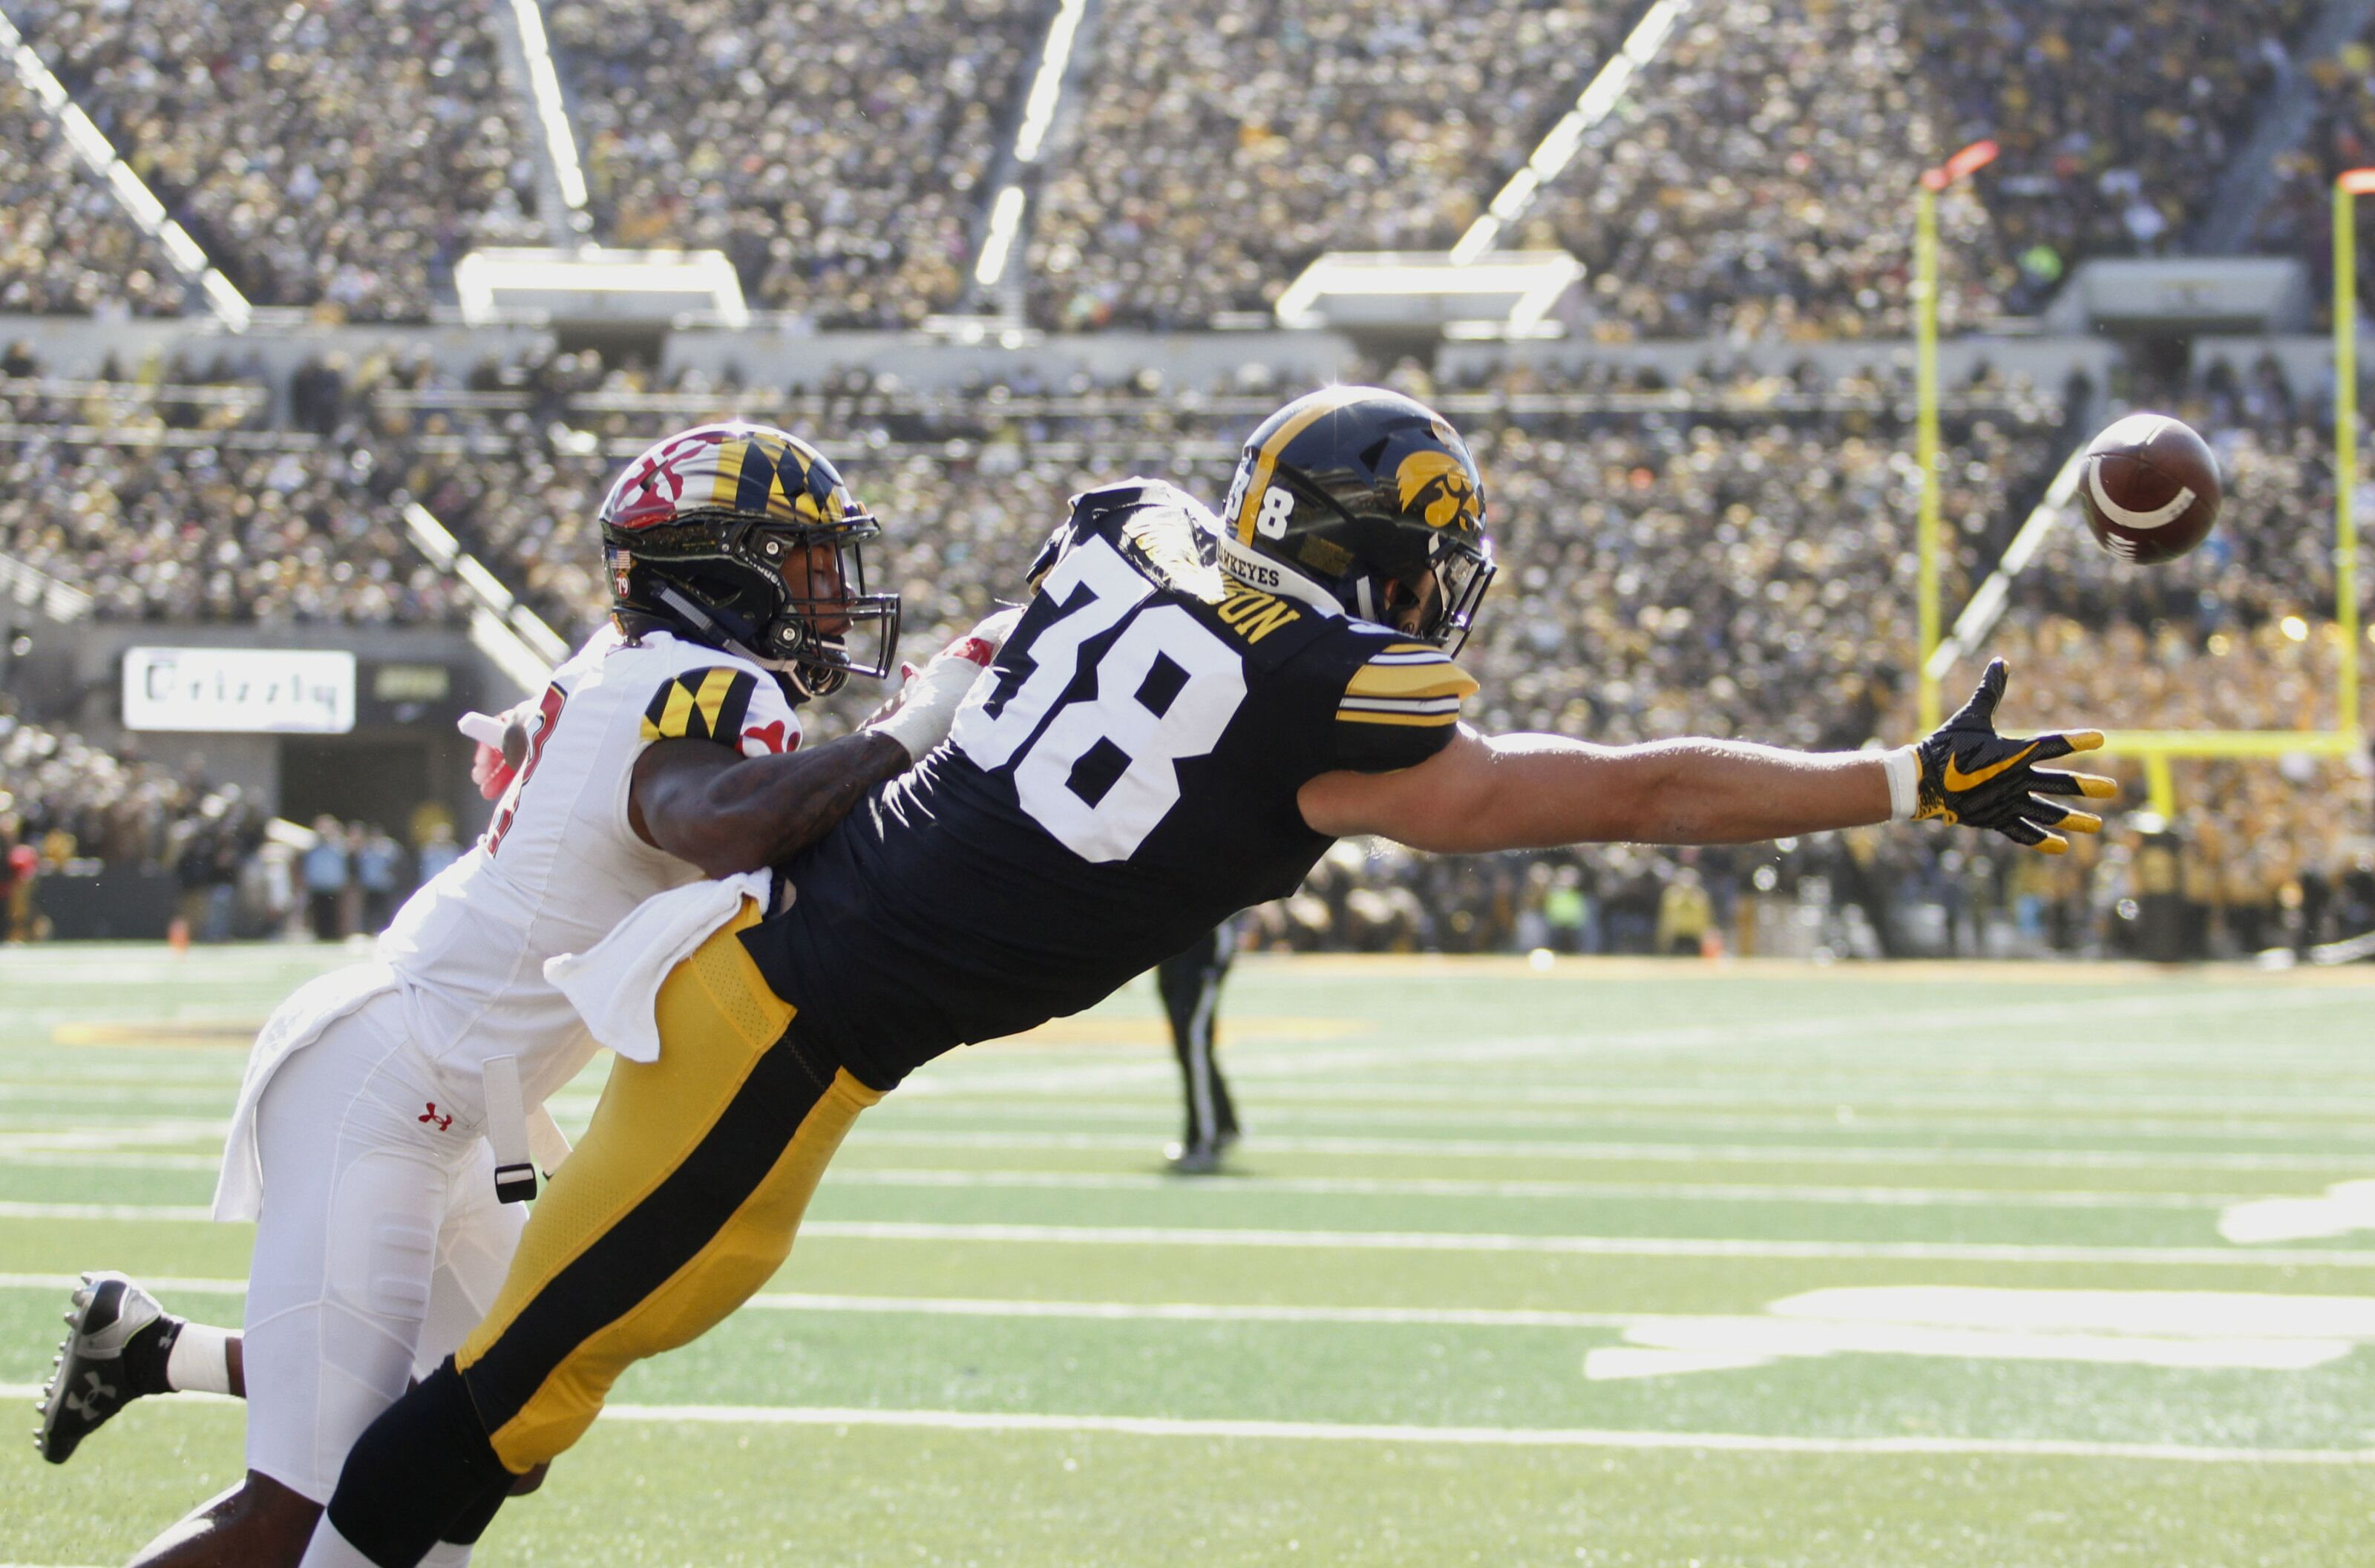 Both The Iowa Football Program And The Wisconsin Football Program Secured Needed Victories Sa Ay Where Does The Rest Of The Division Stand After Week 8